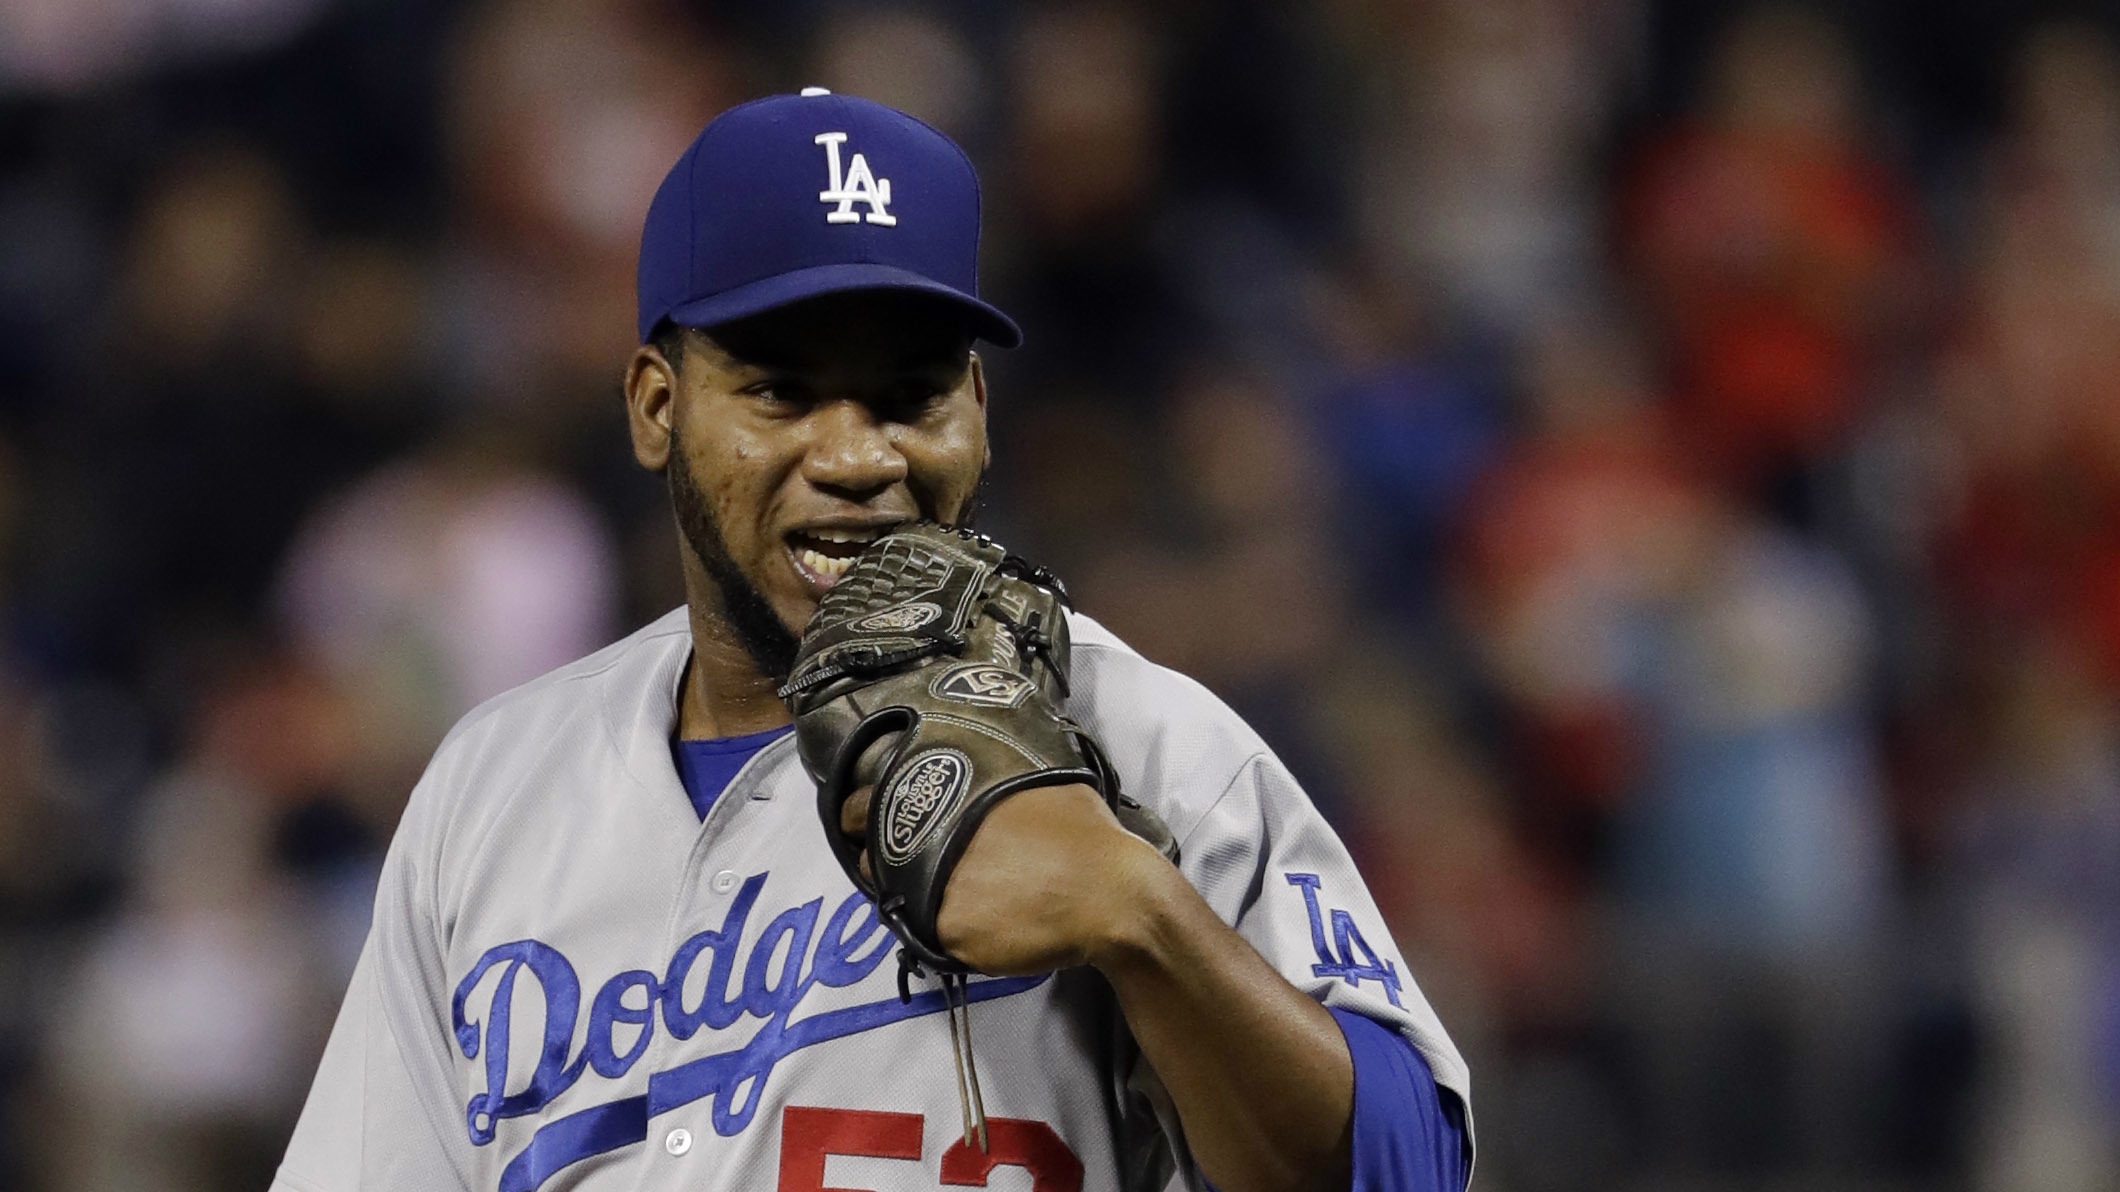 The pitcher Pedro Baez getting ready to pitch.